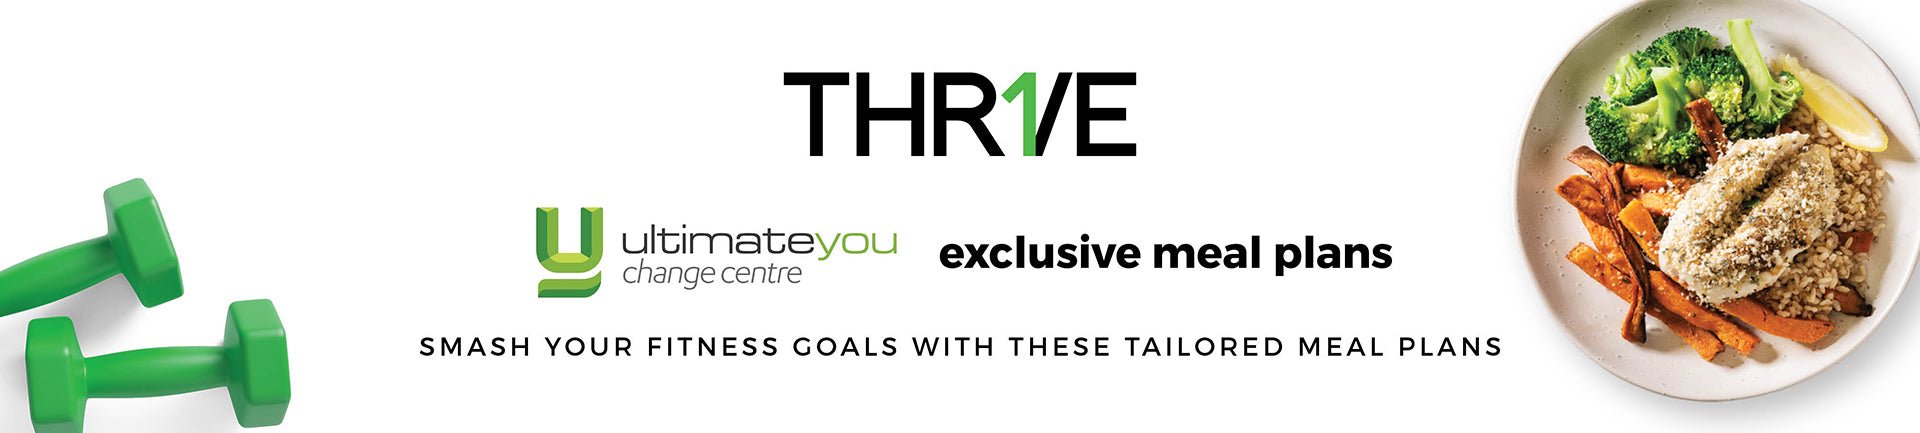 Banner with delicious Thrive food